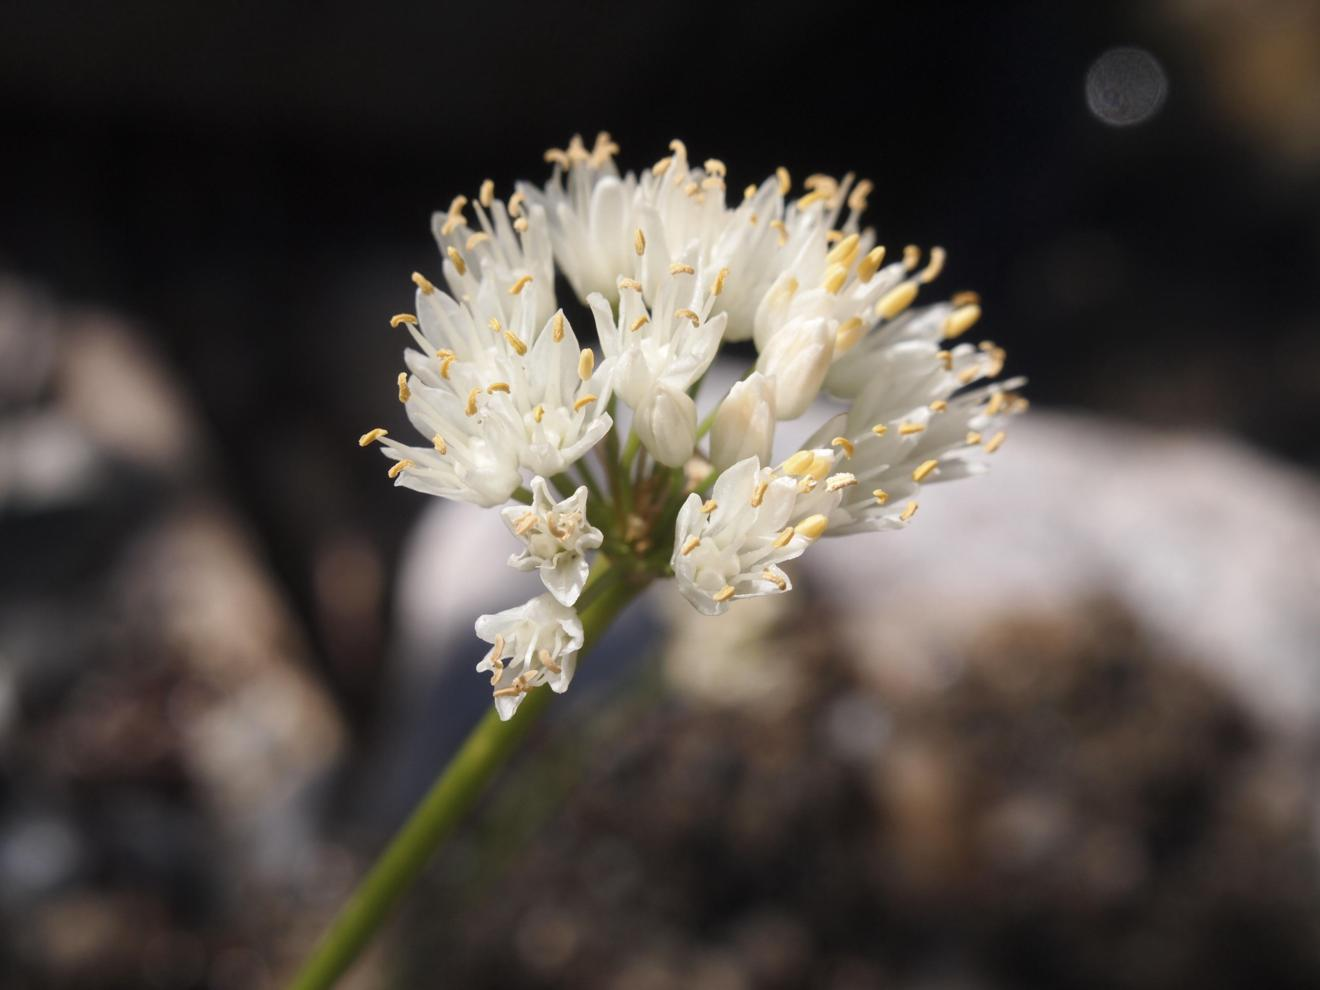 Garlic, Mountain var. albino